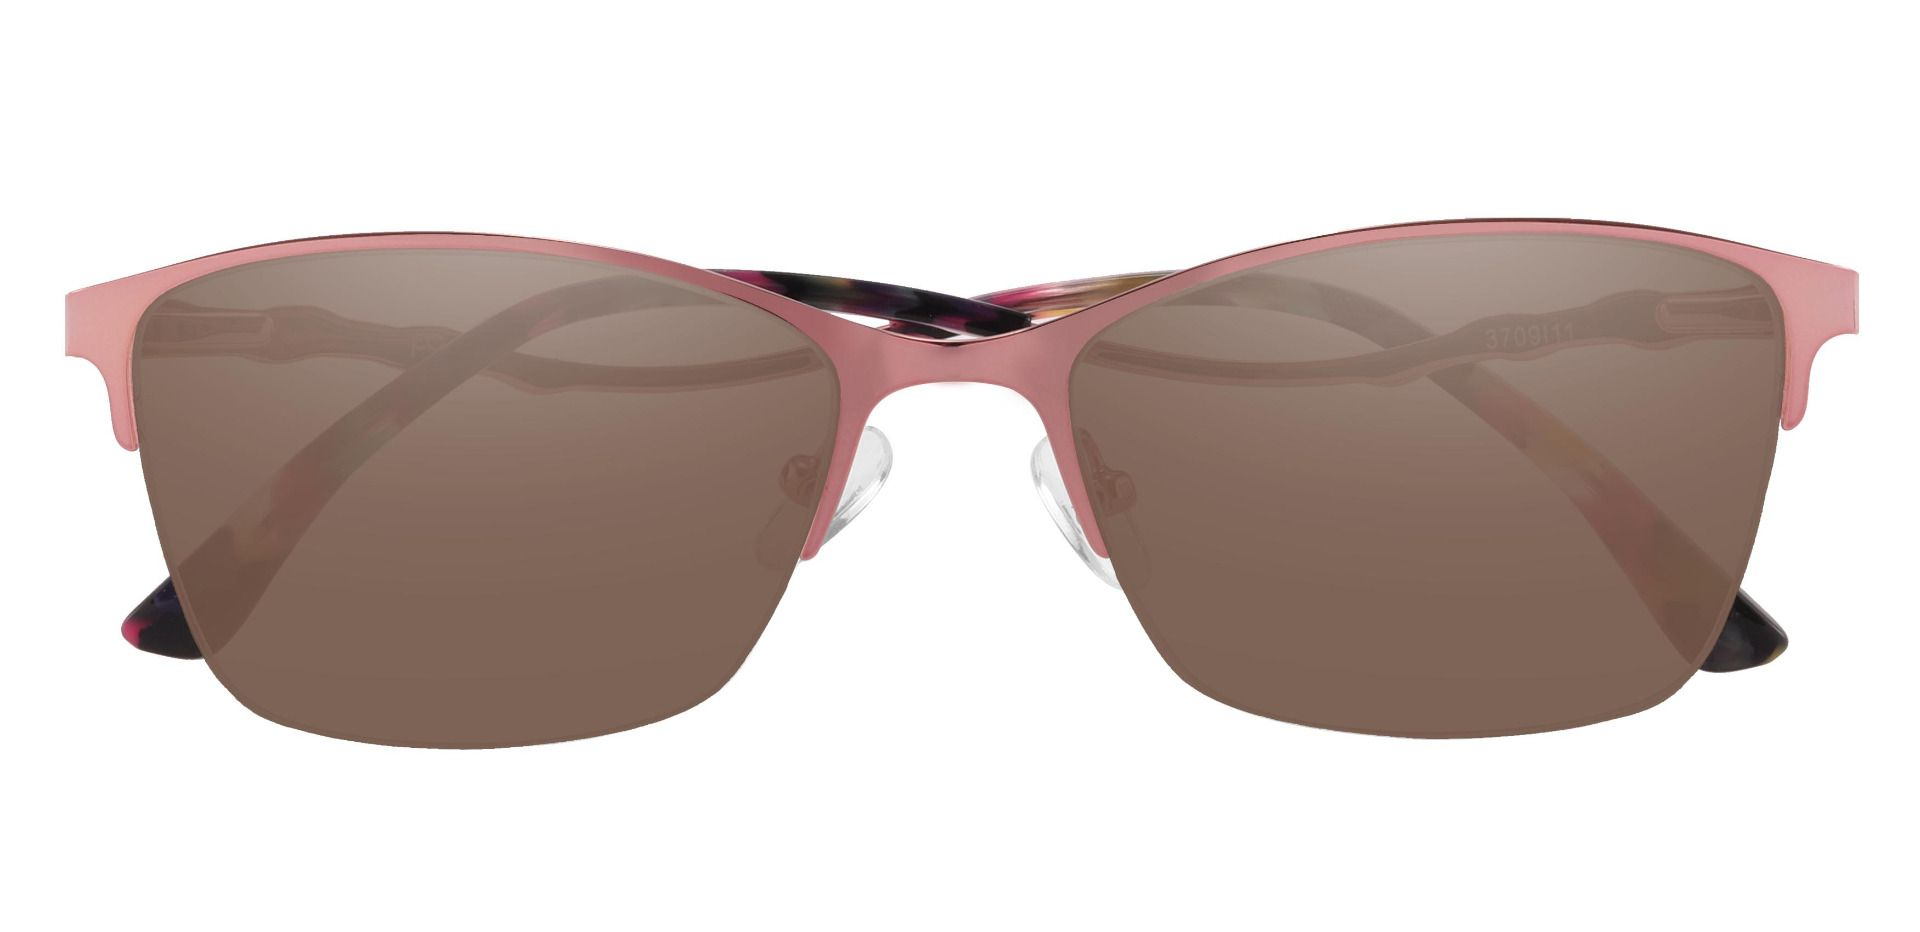 Milan Browline Prescription Sunglasses - Pink Frame With Brown Lenses